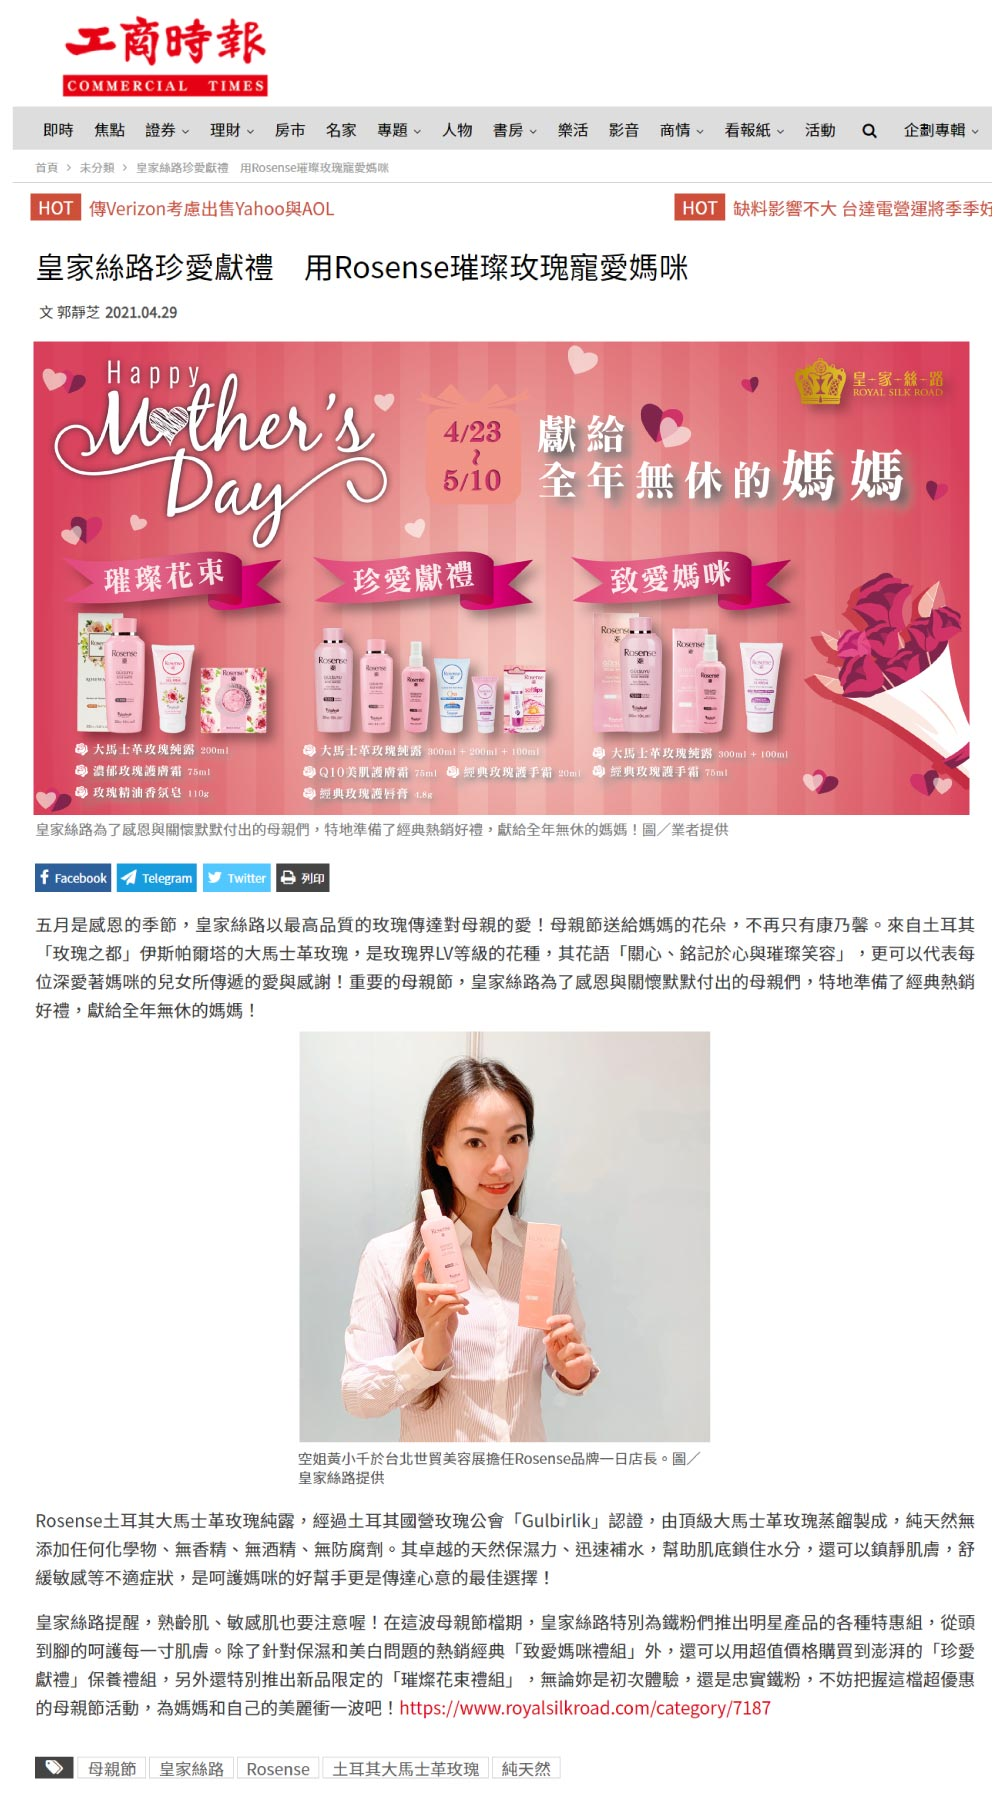 Economic Daily News, Happy Mother's Day, Rosense Rose Water, Damascus Rose